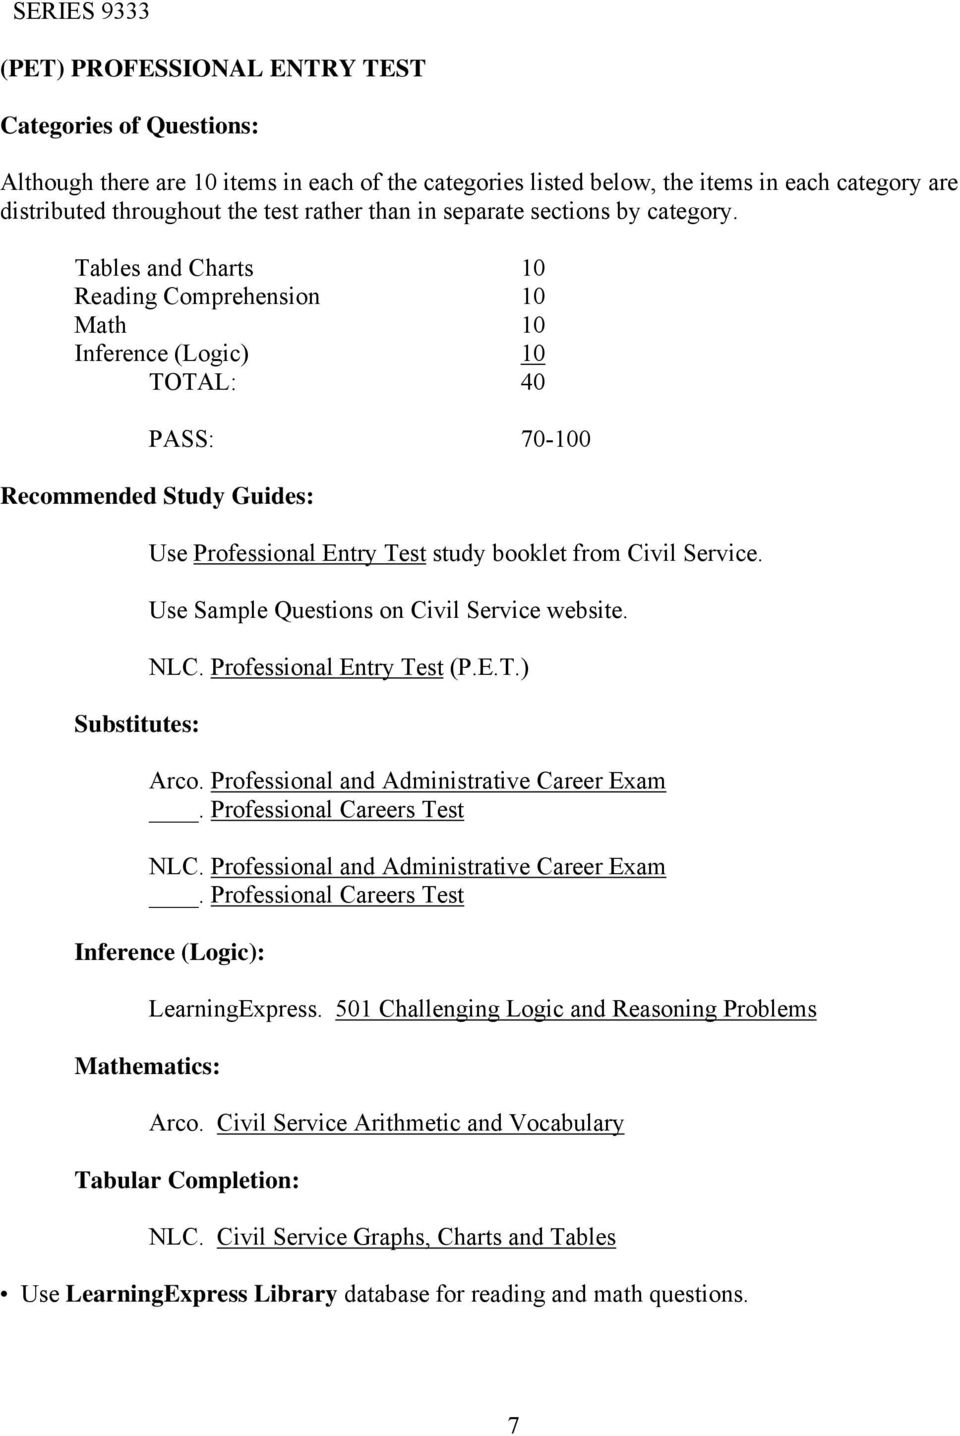 Study Guides and Exam Preparation - CivilService